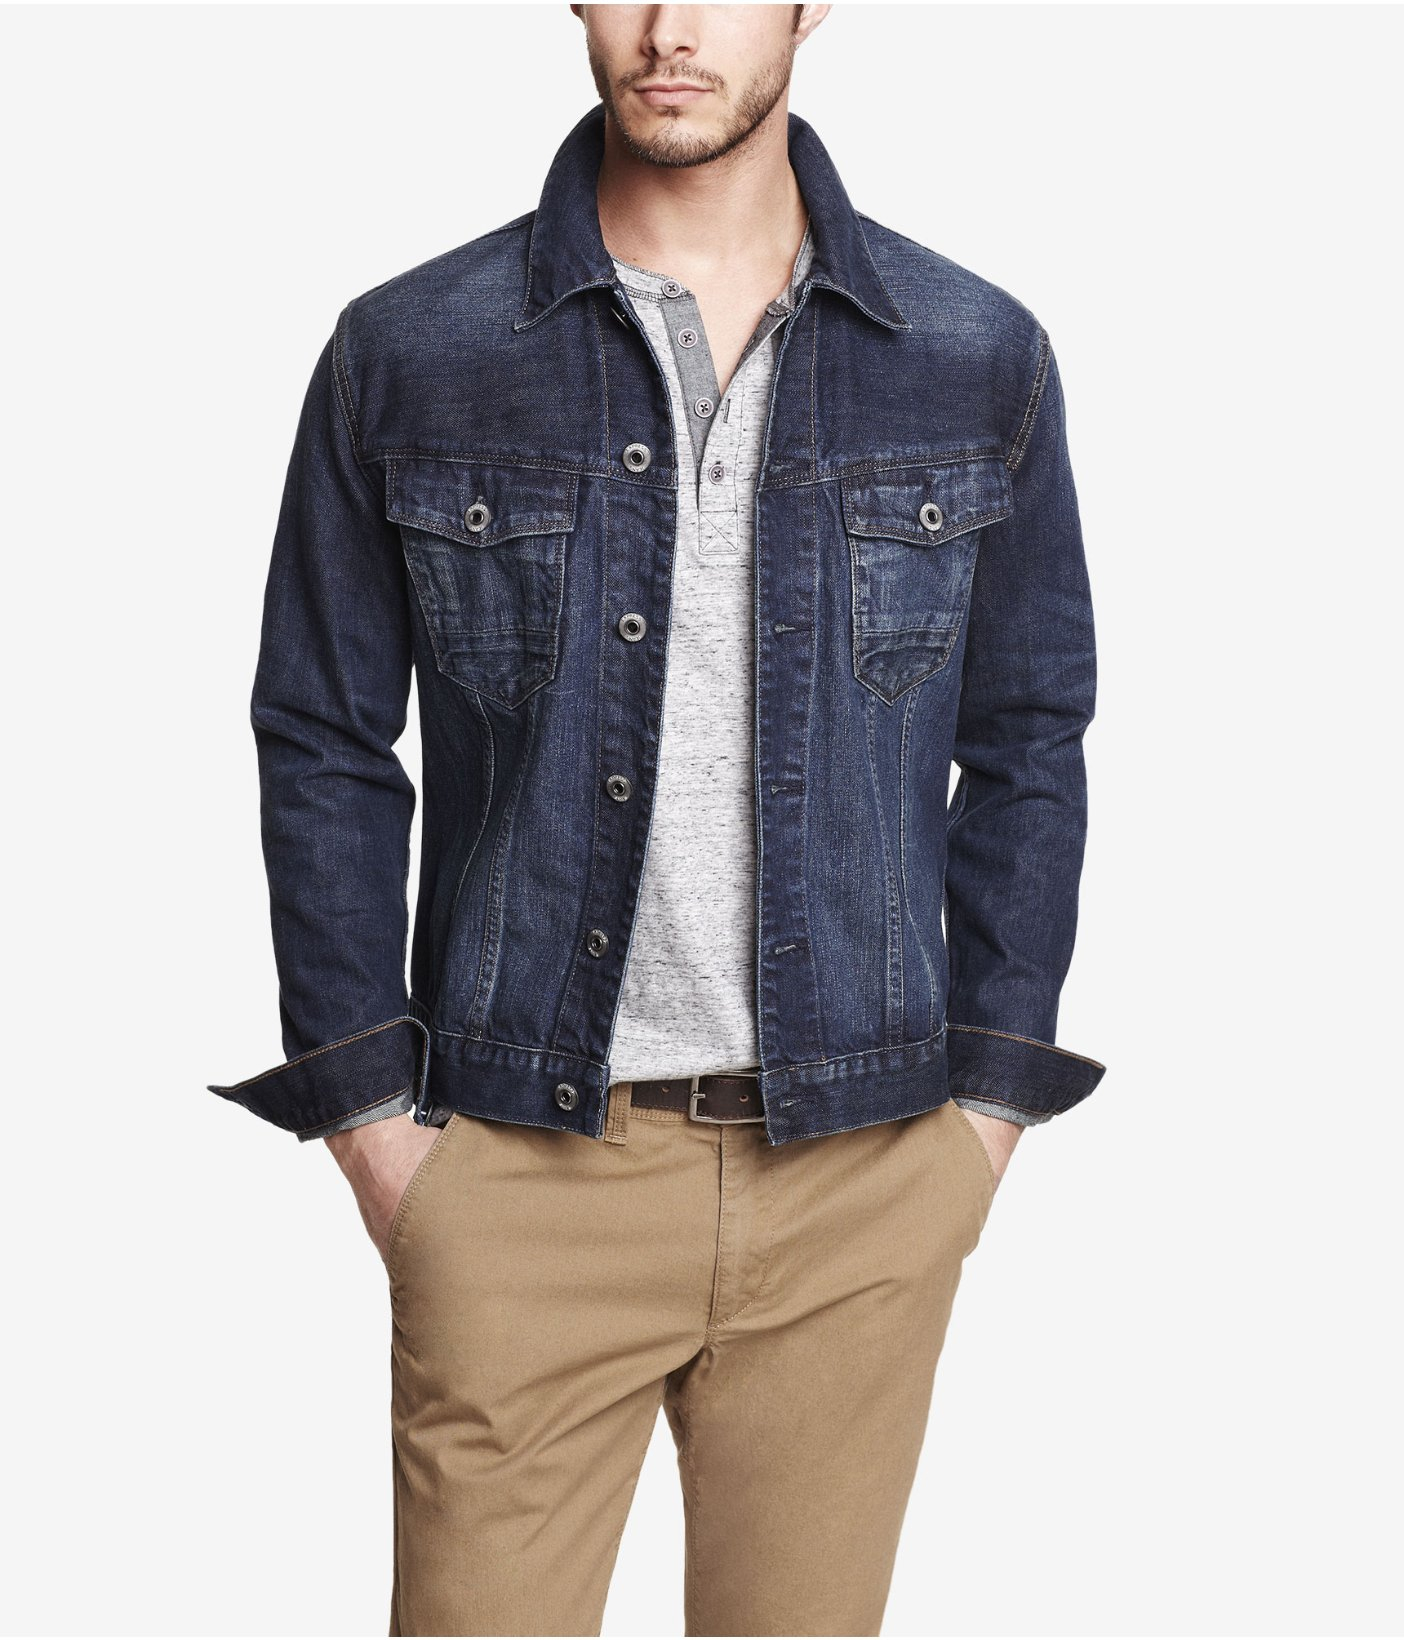 Discover the range of men's denim jackets from ASOS. Shop from a variety of colors and styles, from vintage to oversized denim jackets. ASOS DESIGN faux fur lined oversized denim jacket in blue wash. $ ASOS DESIGN faux fur lined oversized denim jacket in black. Sixth June denim jacket with safety pins in black exclusive to ASOS.